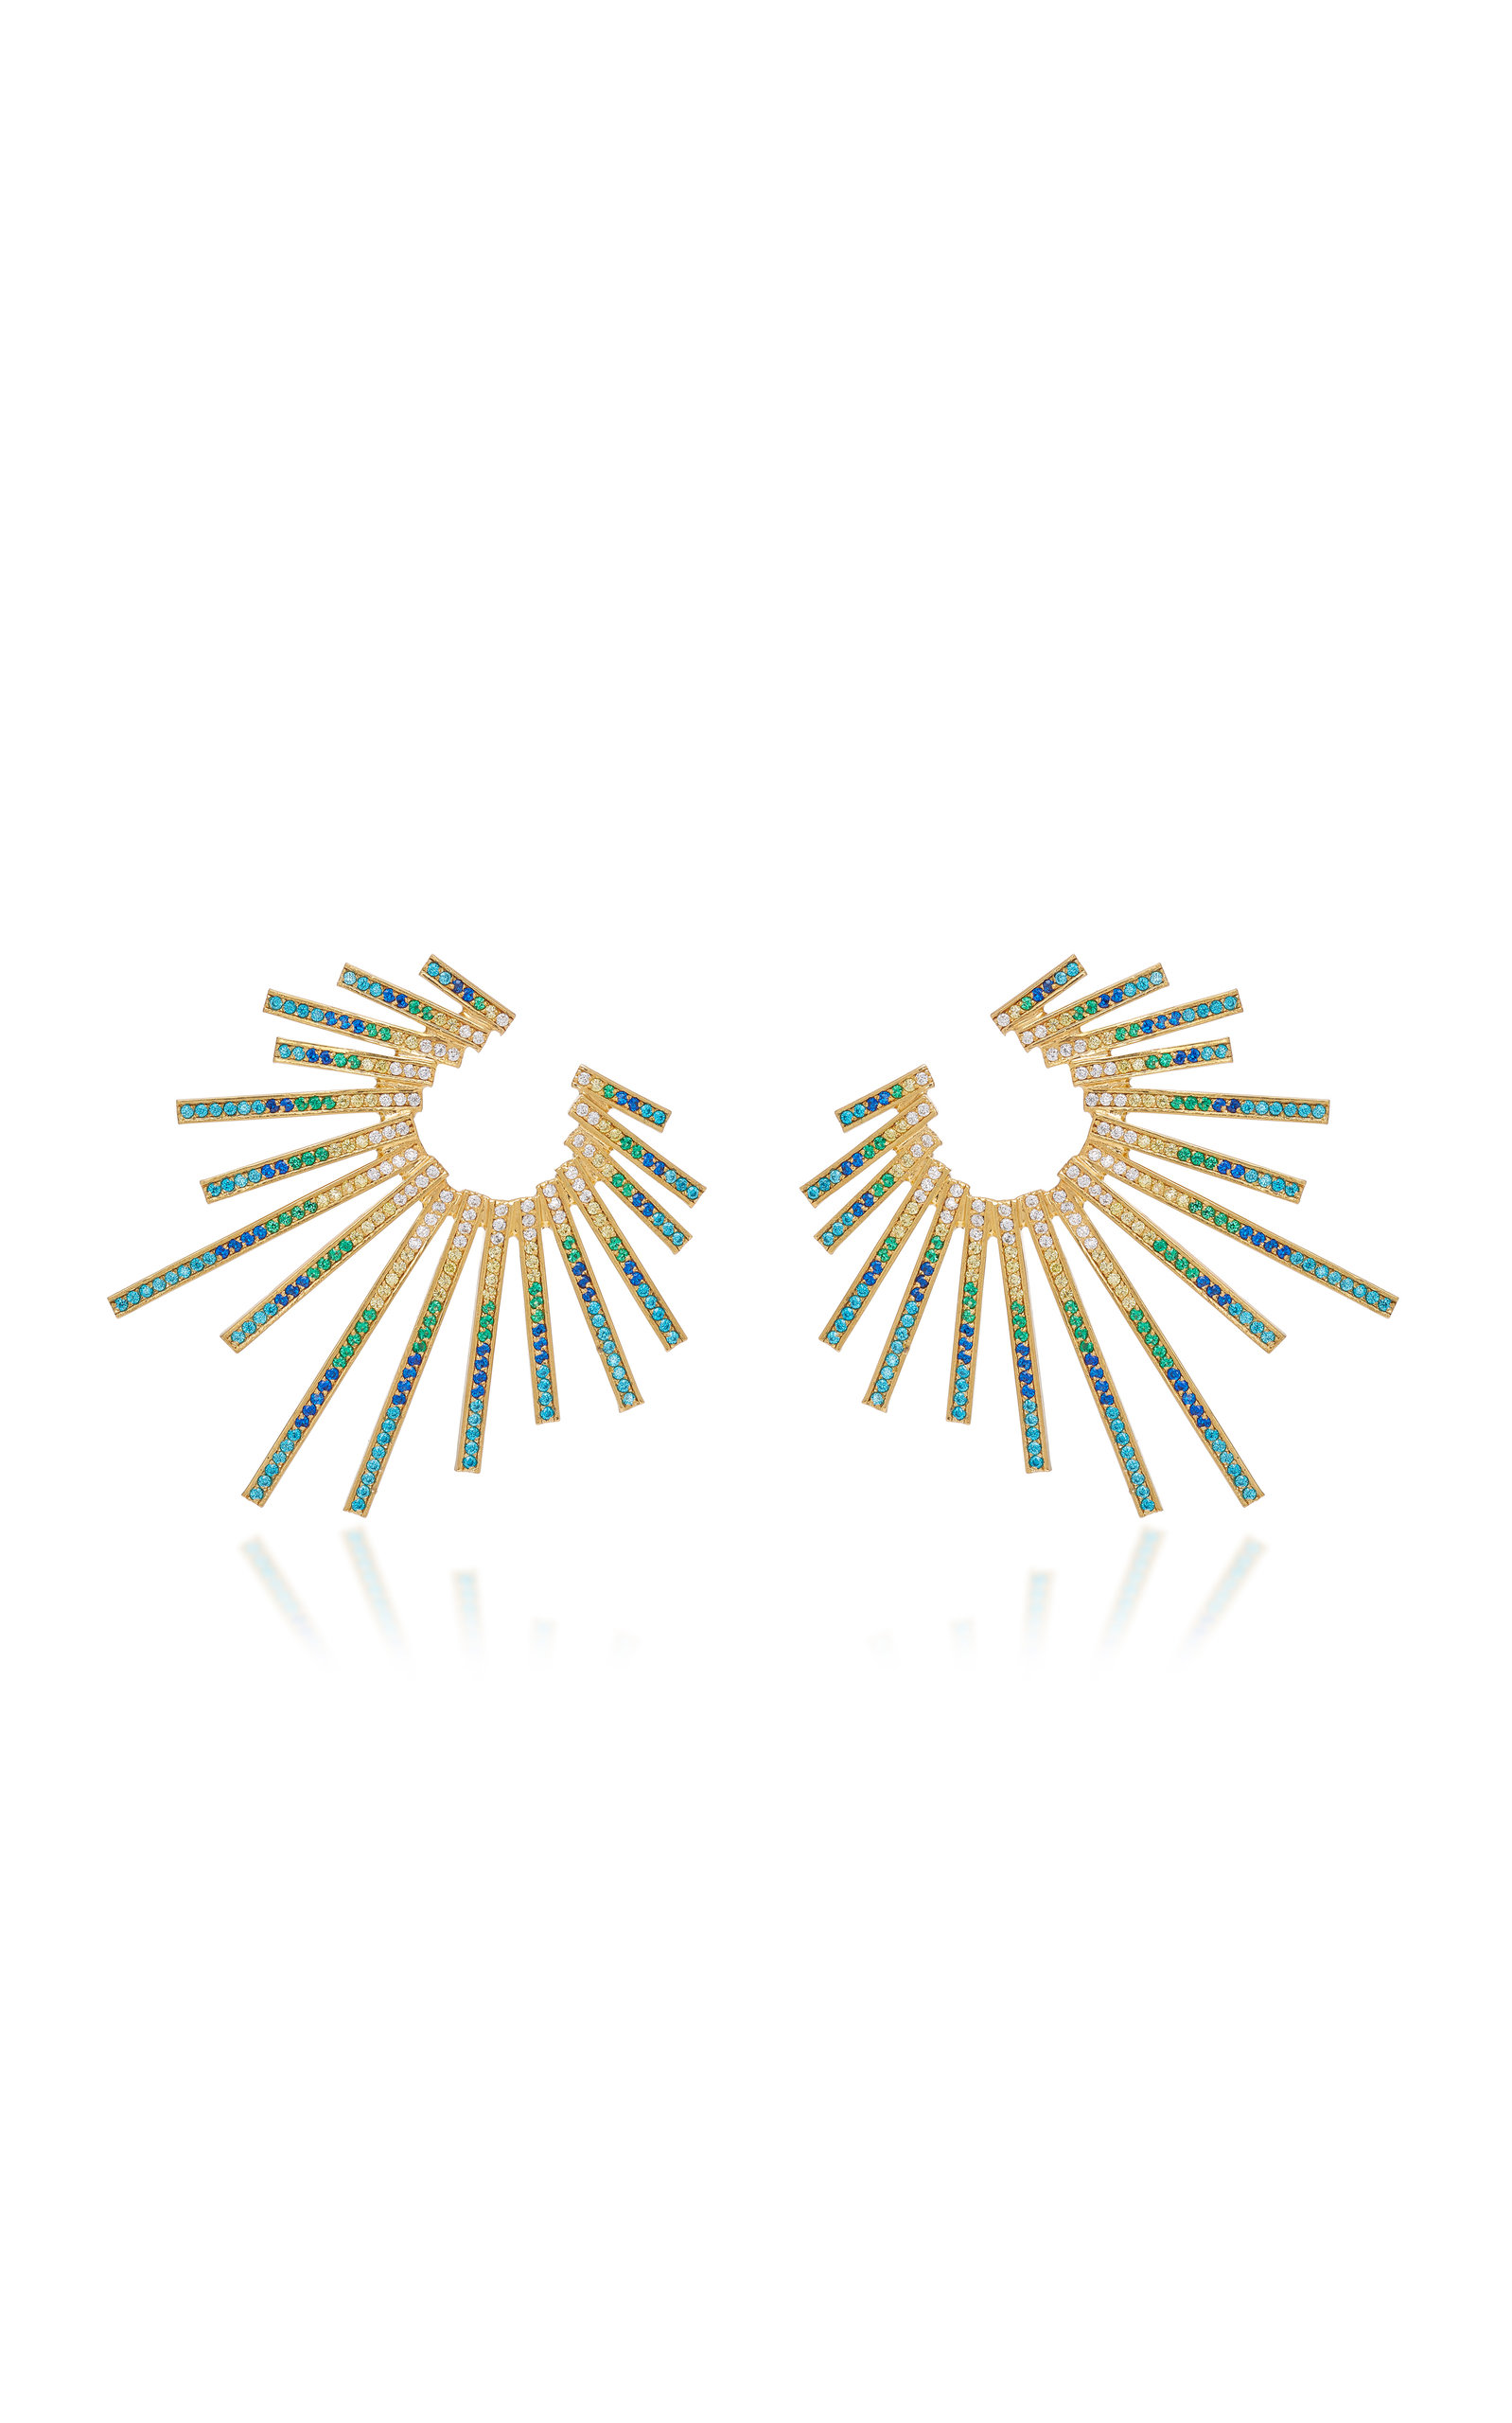 JOANNA LAURA CONSTANTINE CRISS-CROSS GOLD-PLATED BRASS AND CUBIC ZIRCONIA STATEMENT EARRINGS